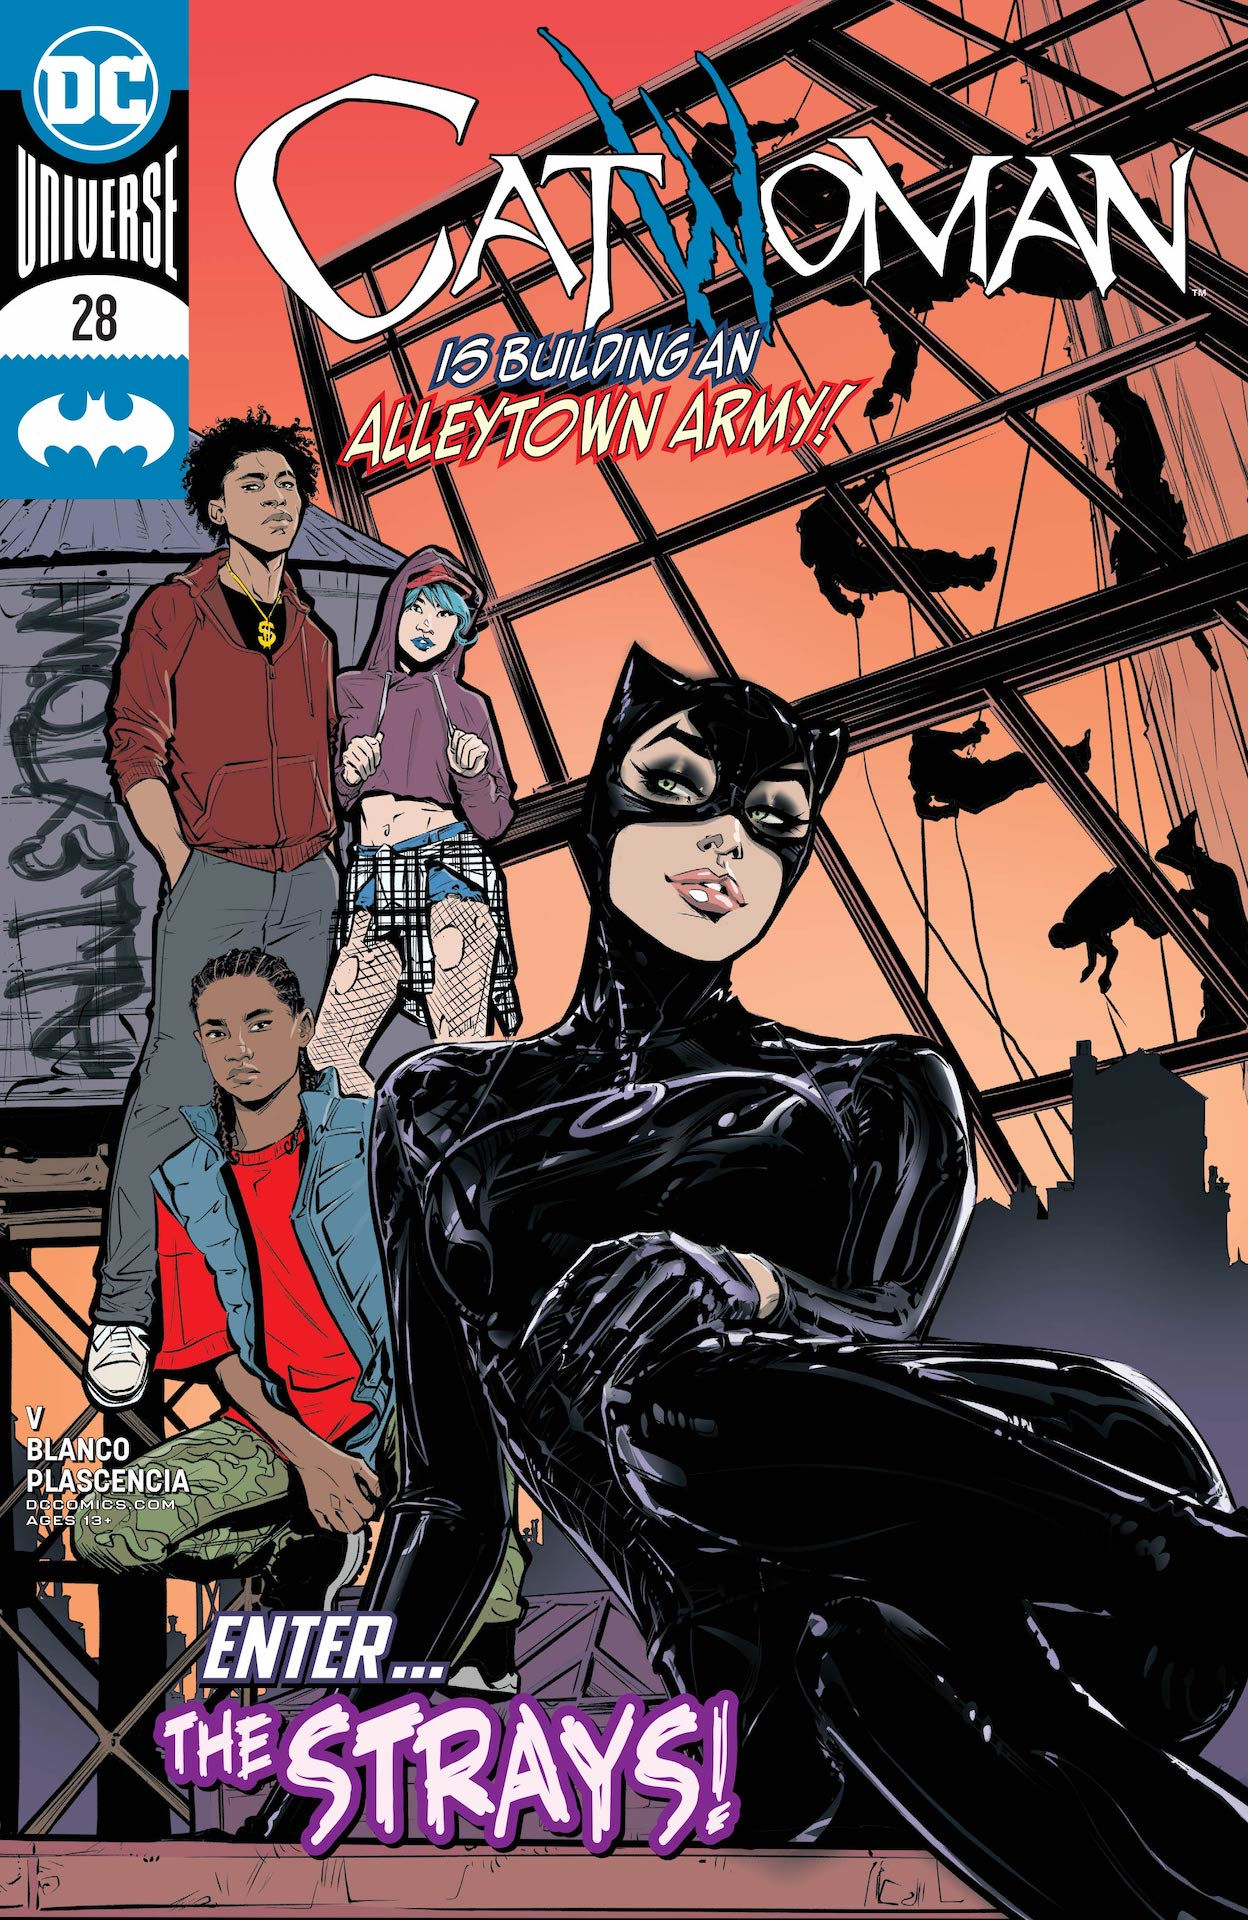 DC Preview: Catwoman #28